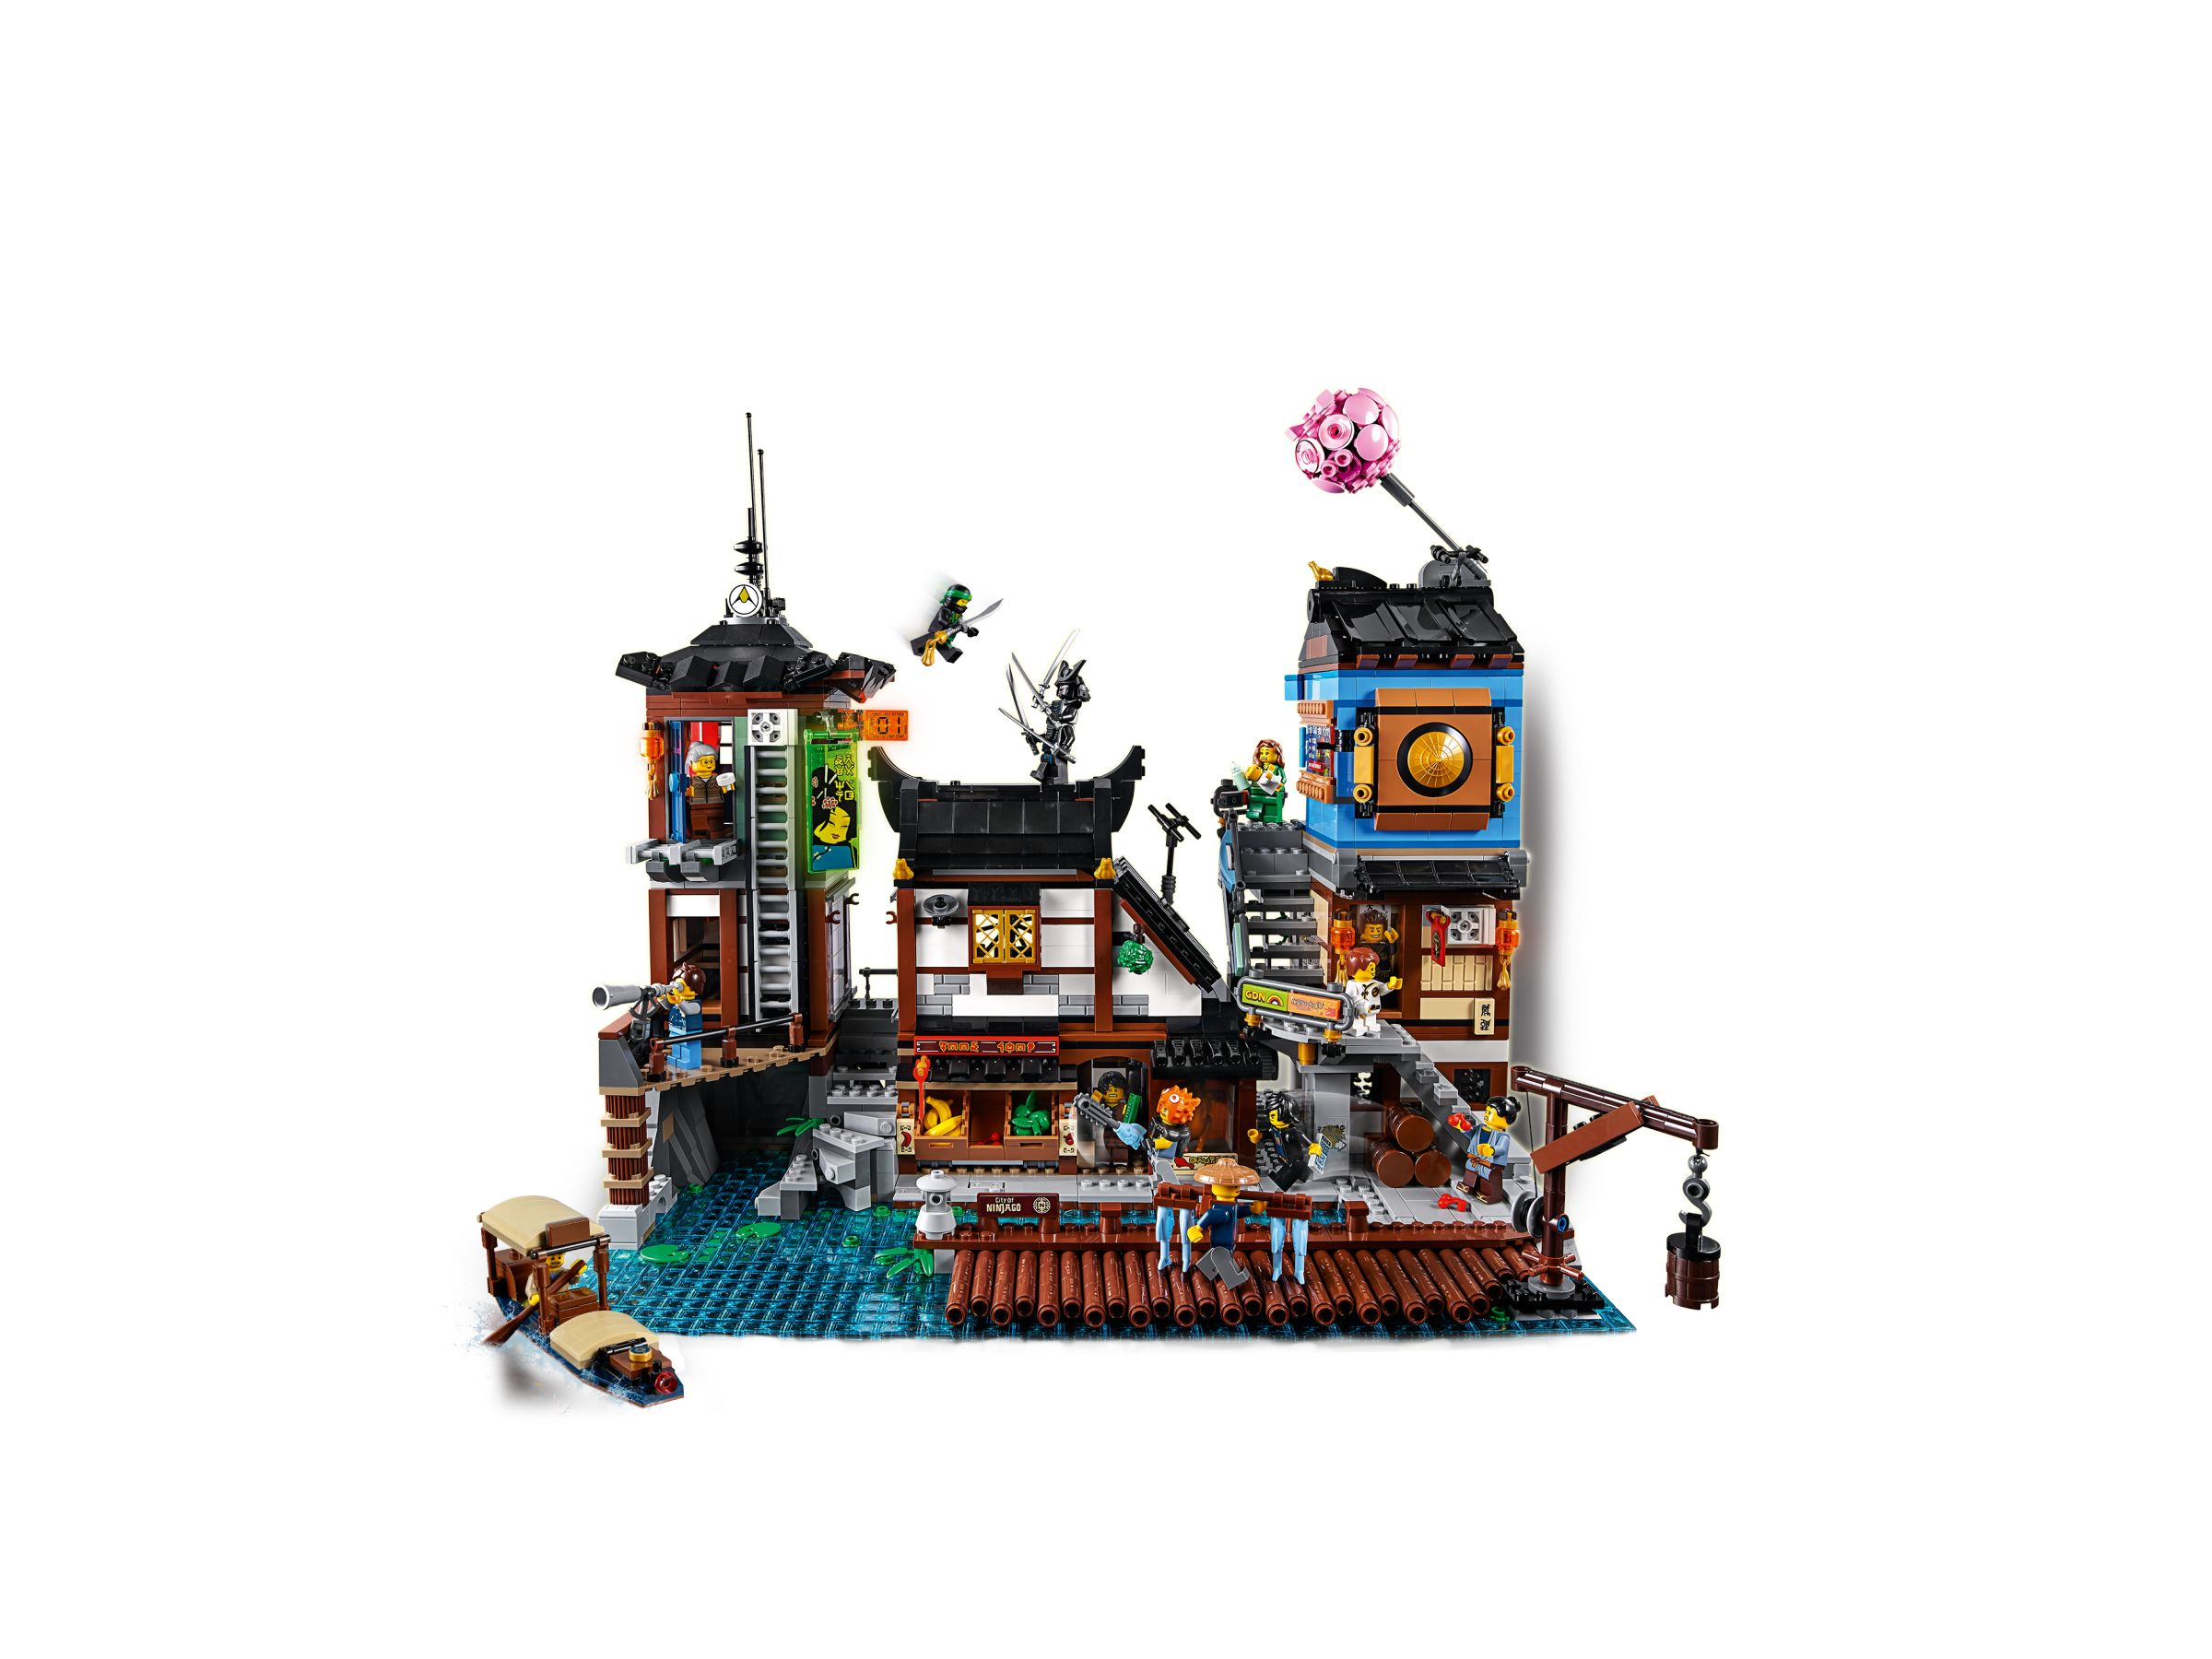 LEGO The LEGO Ninjago Movie 70657 Ninjago City Hafen LEGO_70657_alt2.jpg